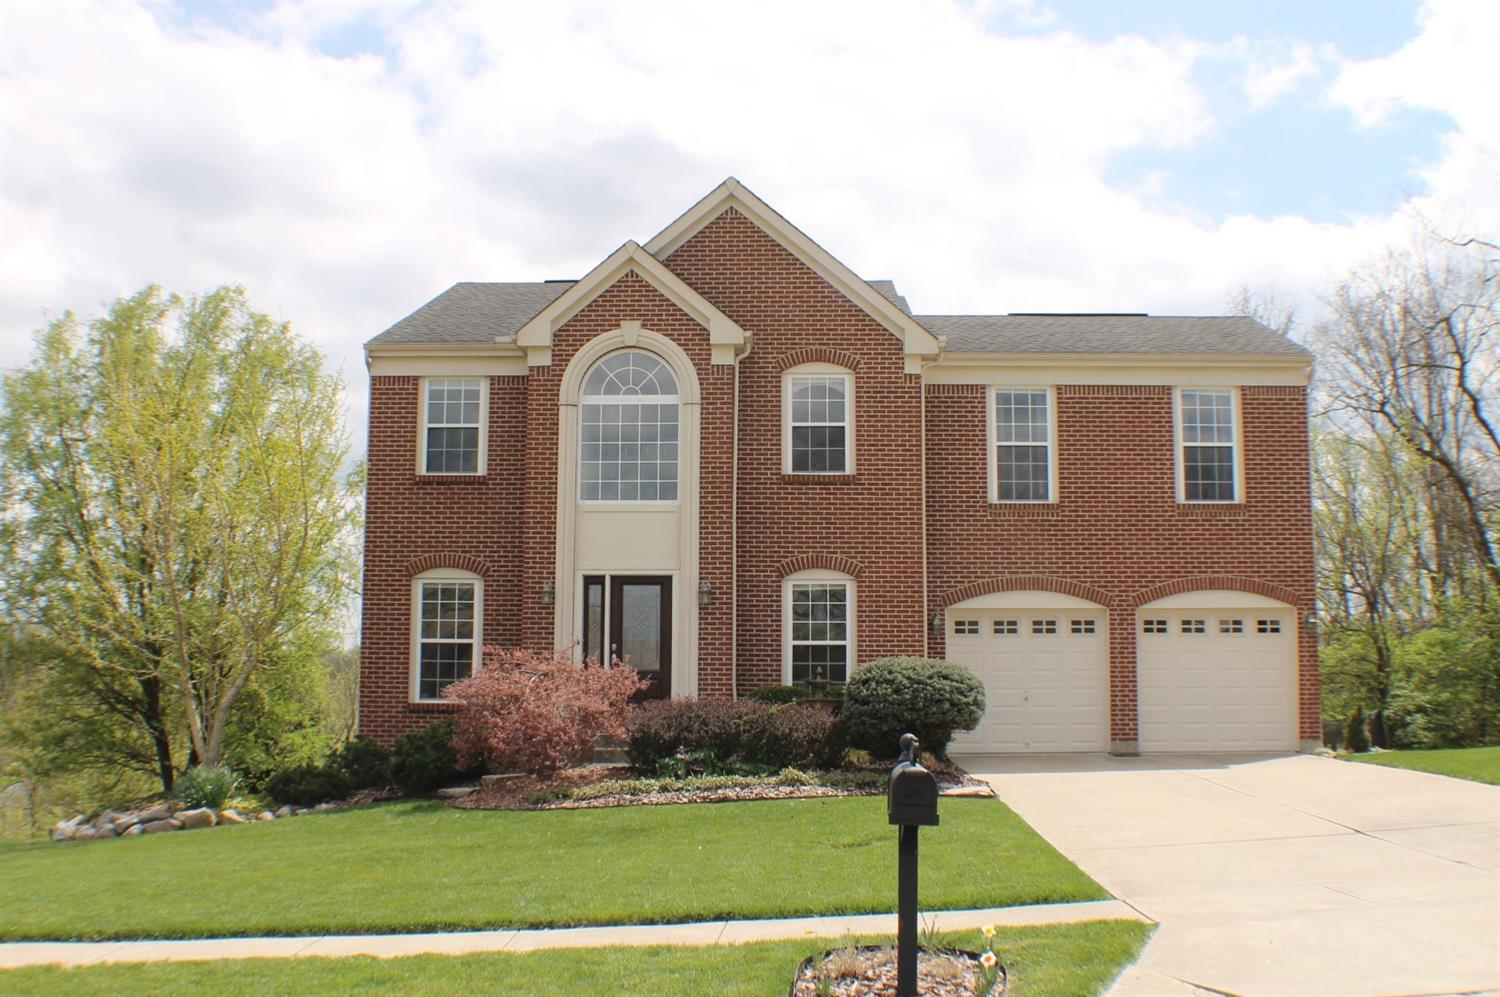 583 Laurelwood Dr Cleves, OH